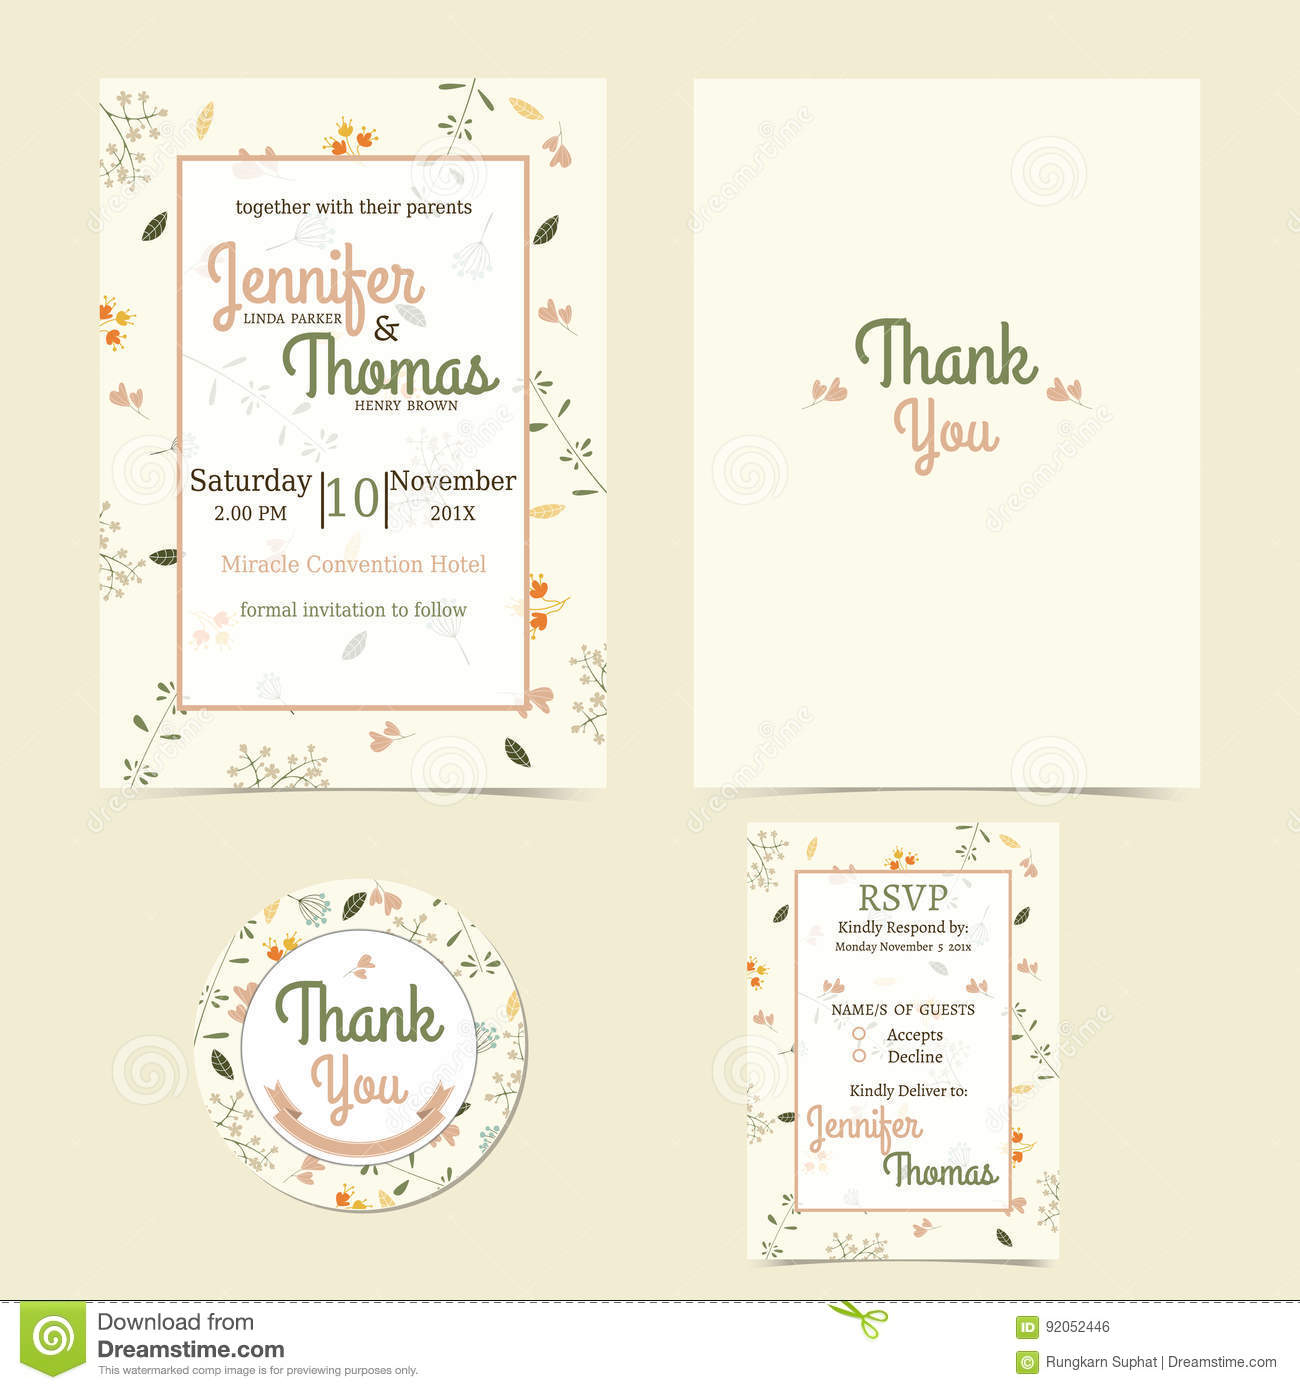 Invitation Or Wedding Card With Adorable Floral Background